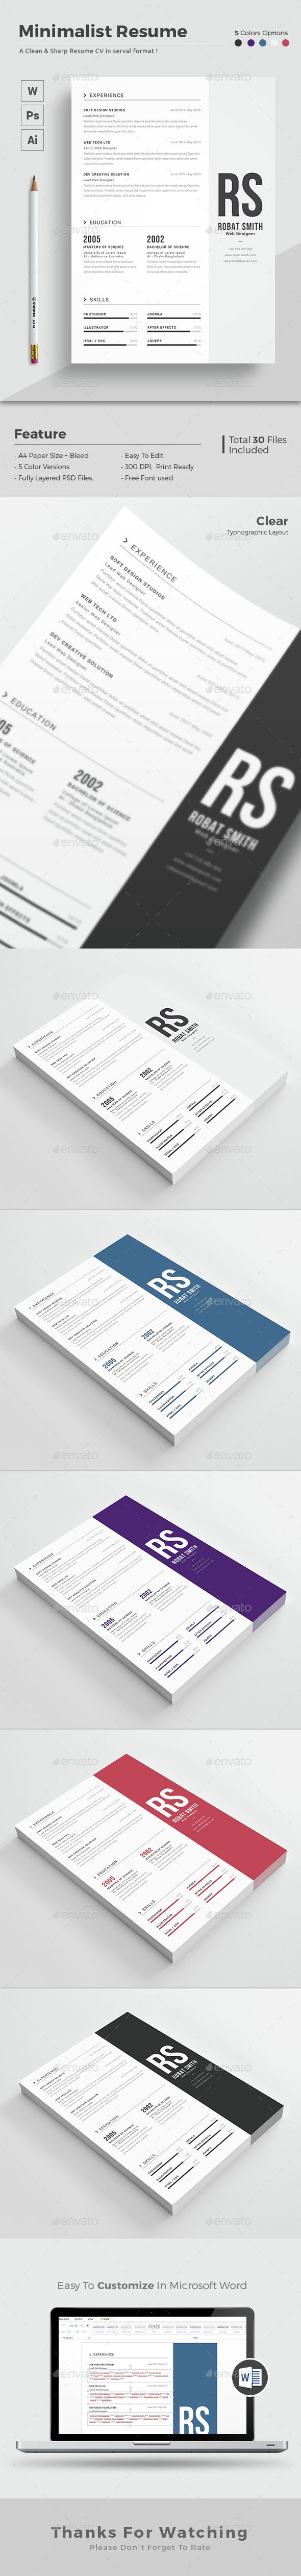 229 Best Resume Images On Pinterest